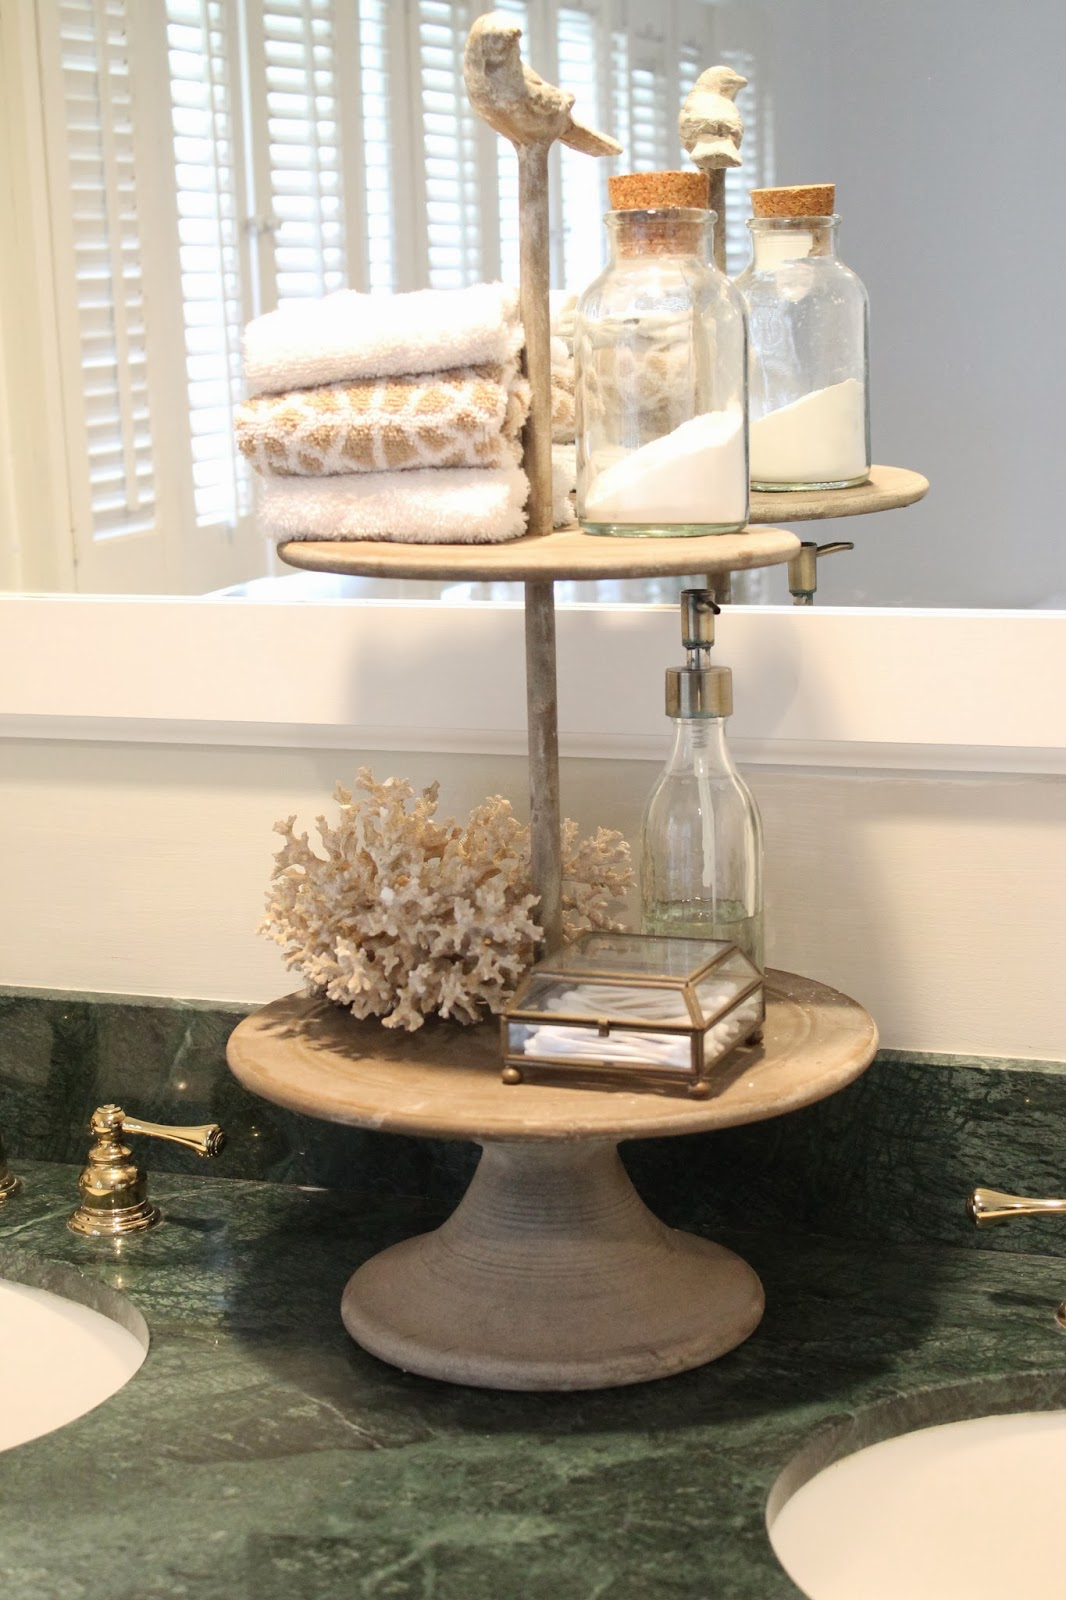 Bathroom Vanity Accessories The Picket Fence Projects Counter Clutter